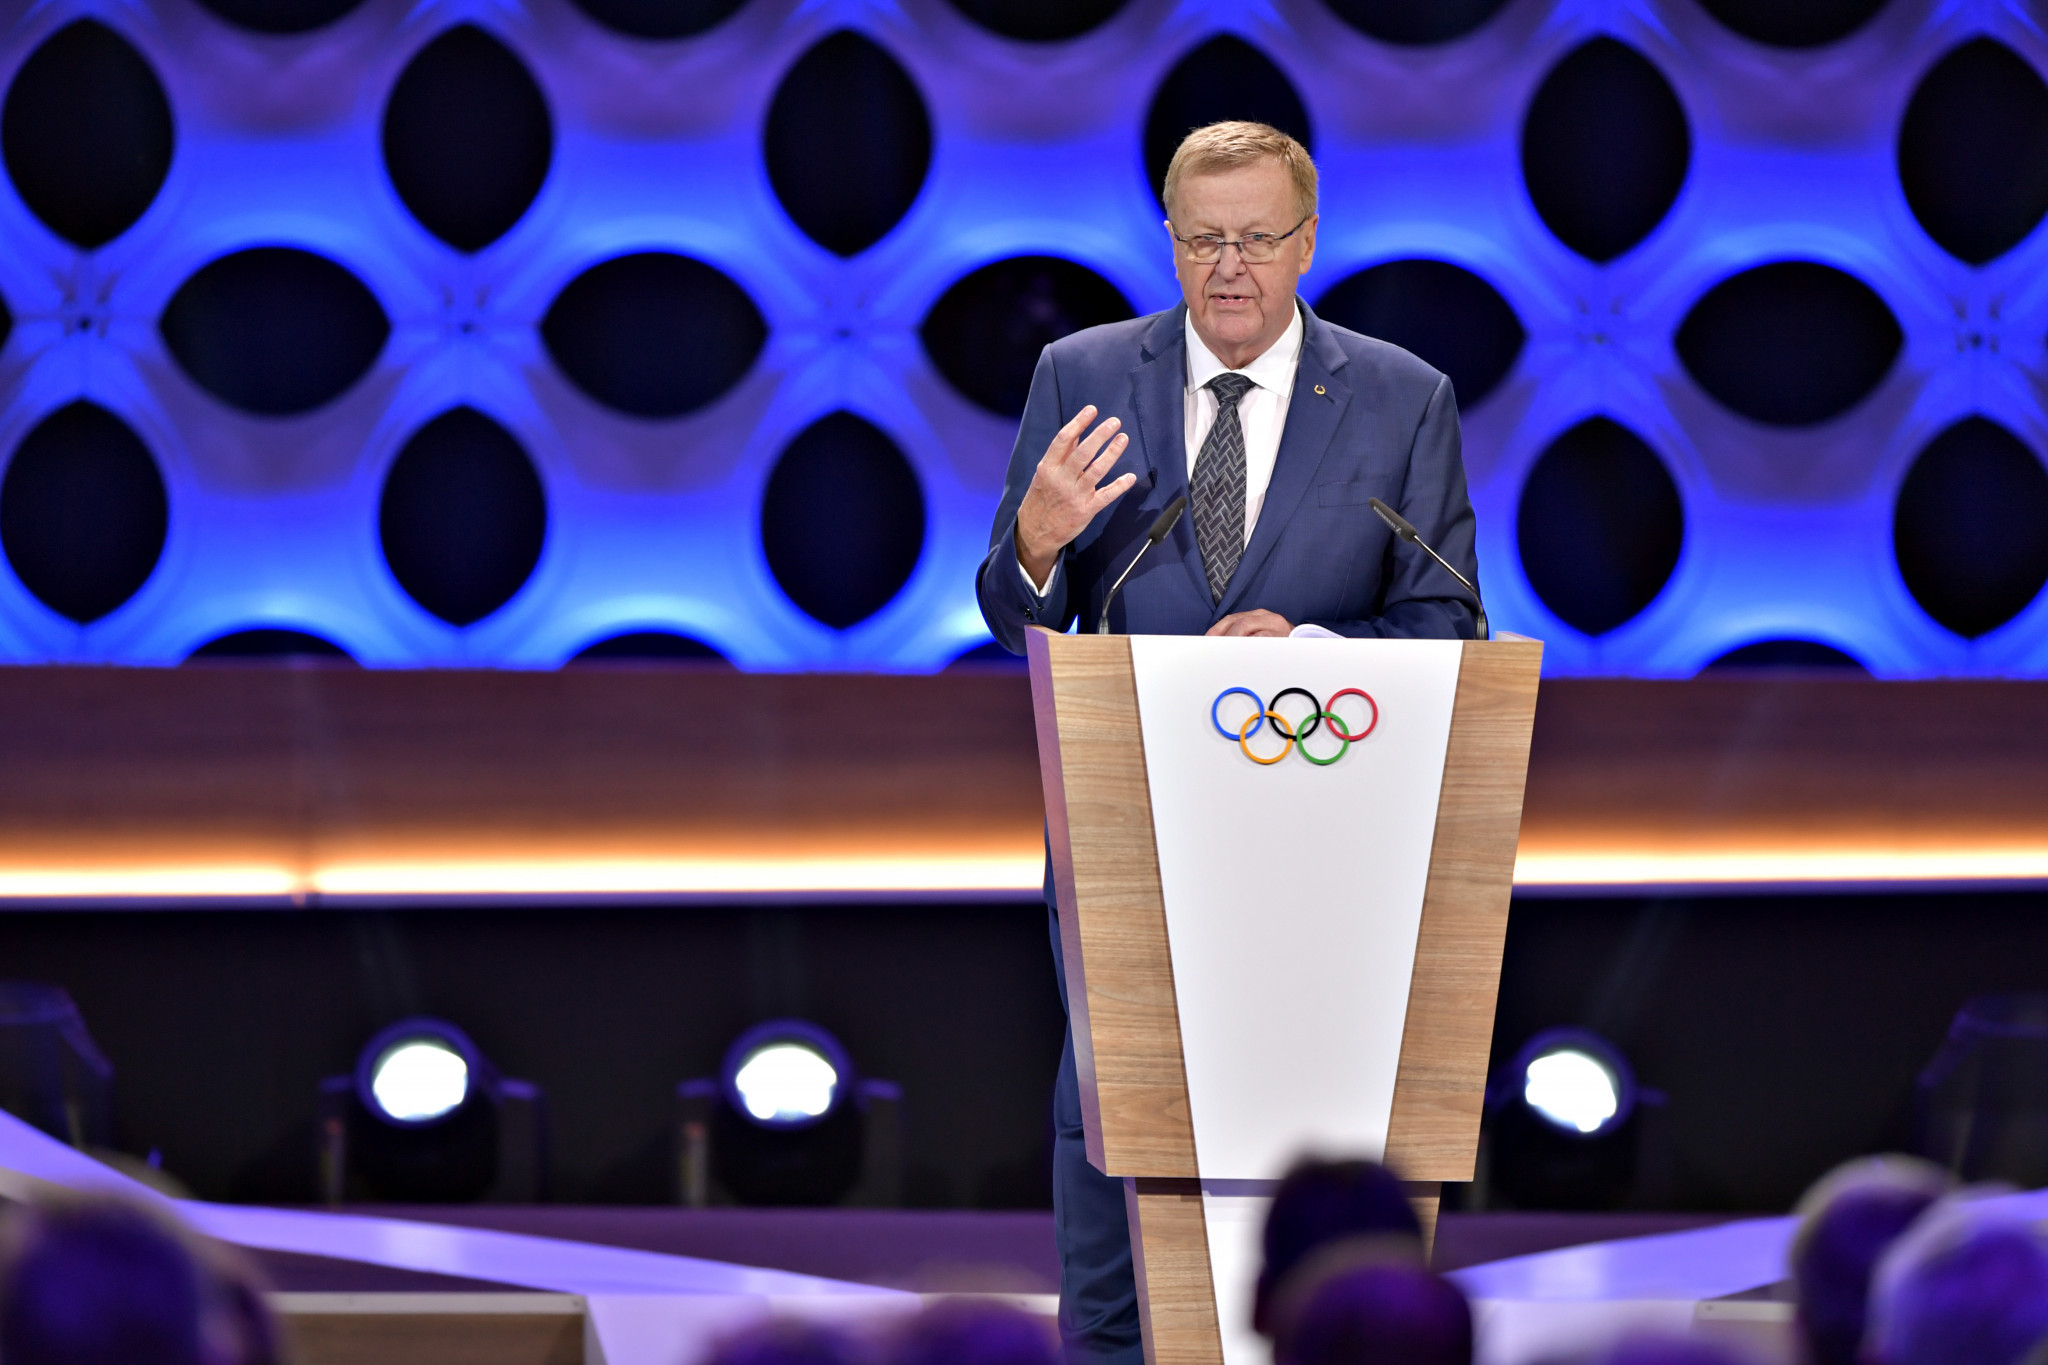 IOC could cut quota places from full Olympic sports to make way for additional events